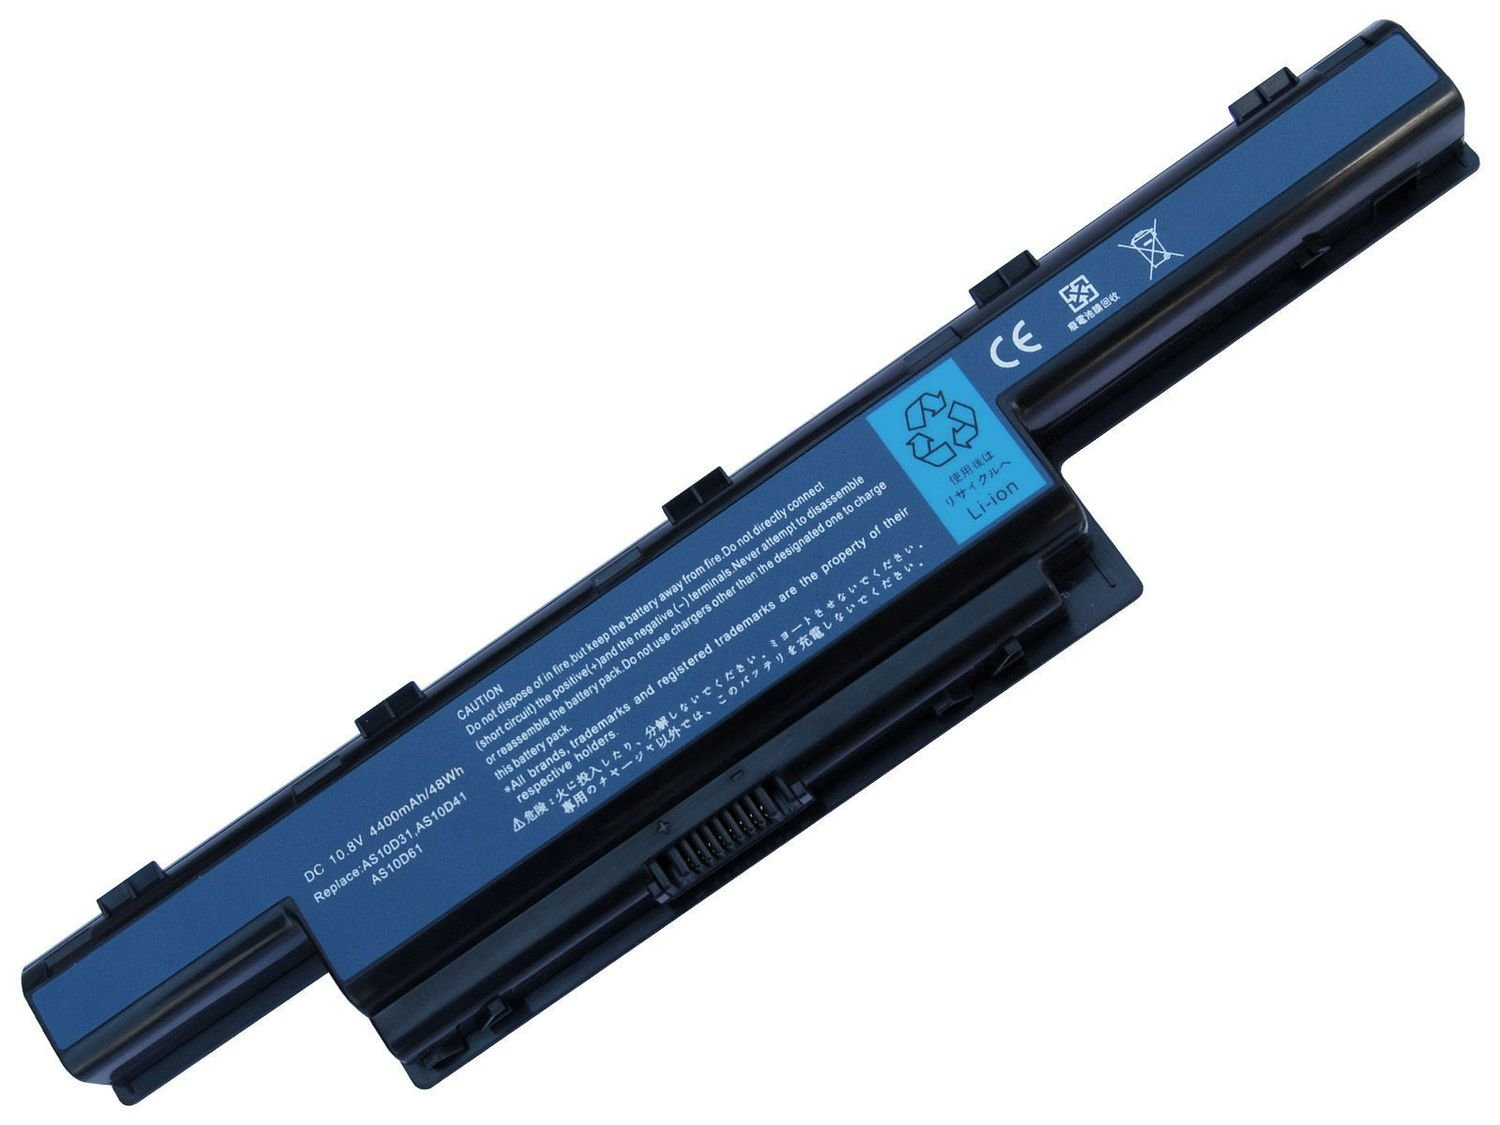 Acer Aspire 5250 5252 5253 5253G Series compatible laptop battery